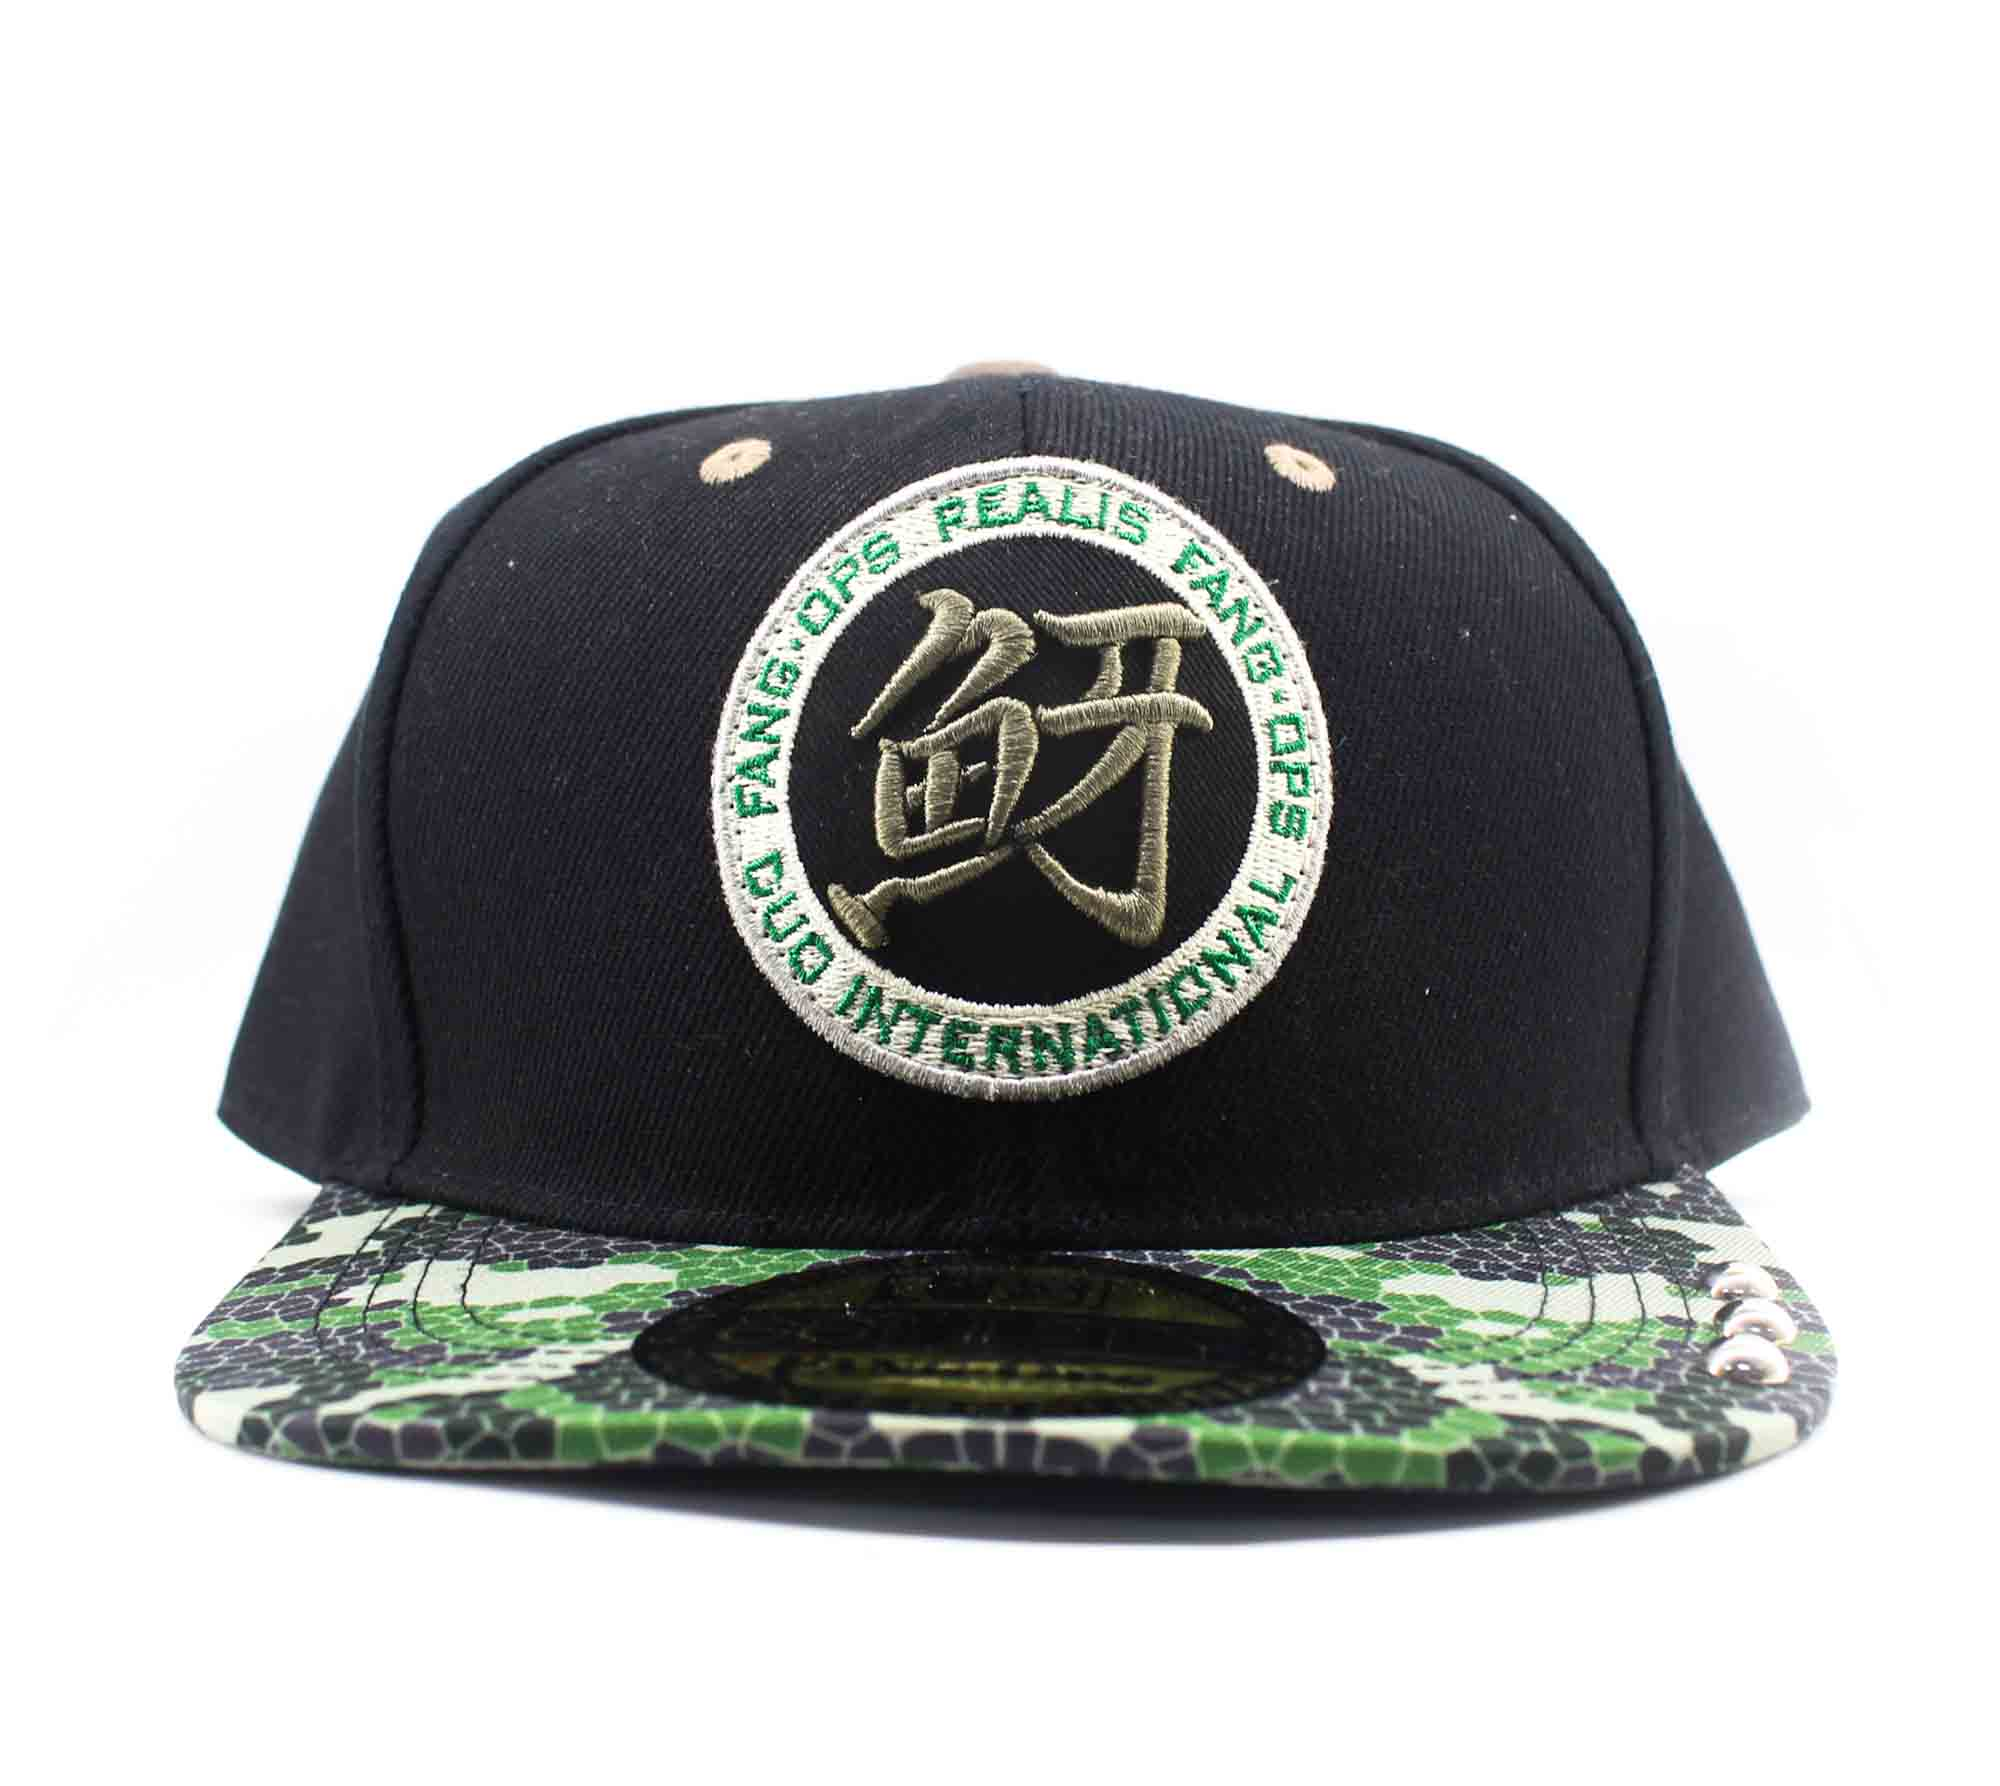 Duo Cap Fang Ops Kanji Solid Original Japan Free Size Black Camo (0260)